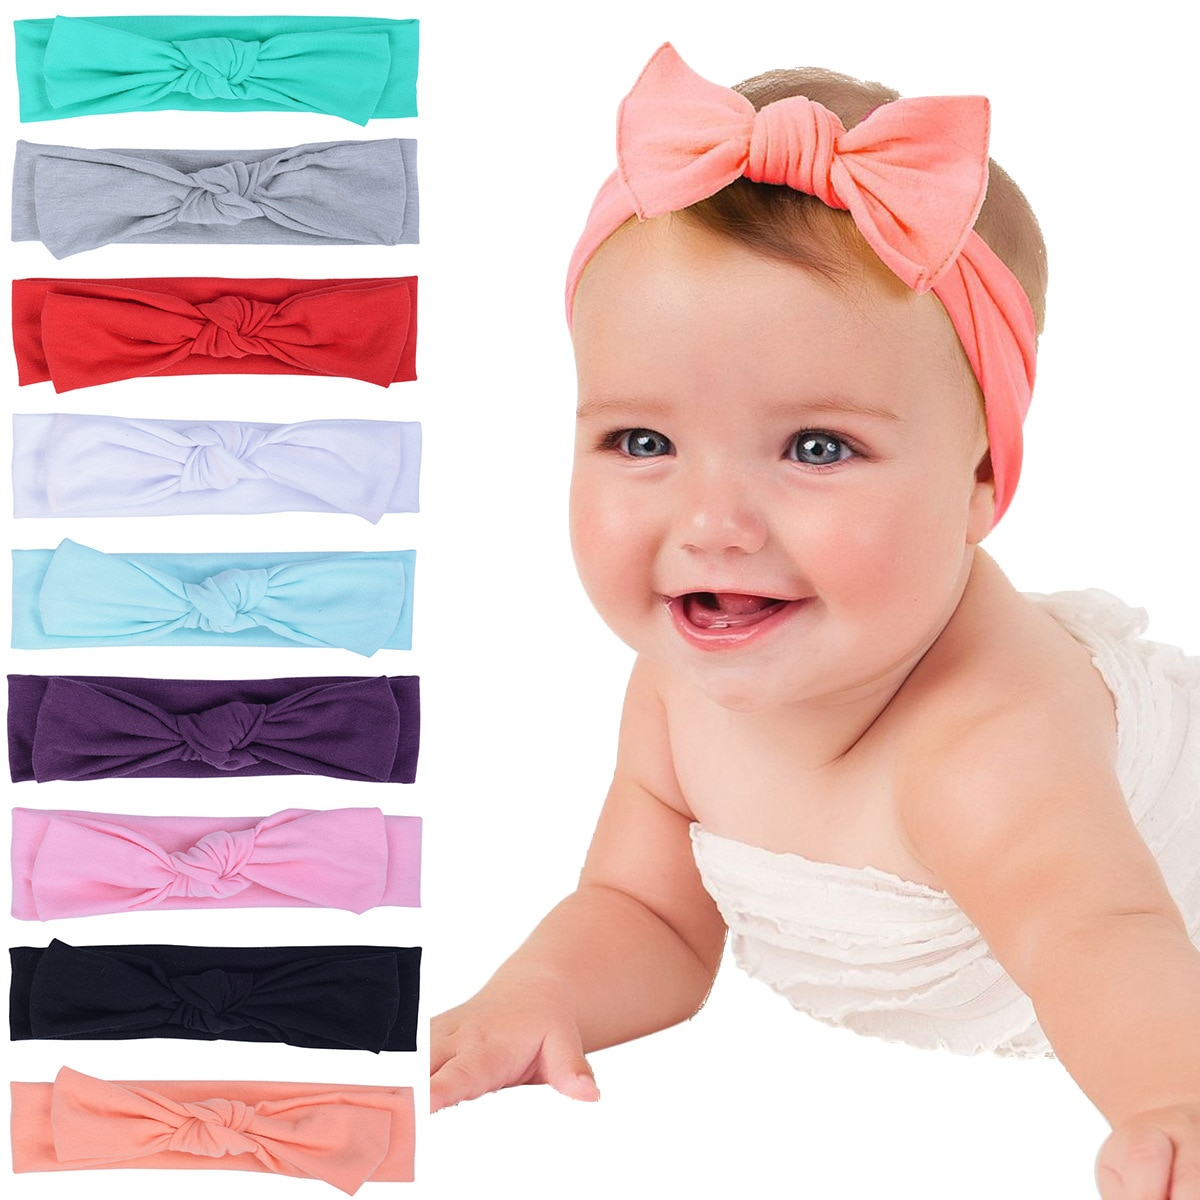 New Adorable Boho Newborn Toddler Headband Ribbon Elastic Baby Headdress Kids Hair Band Girl Bow Kno